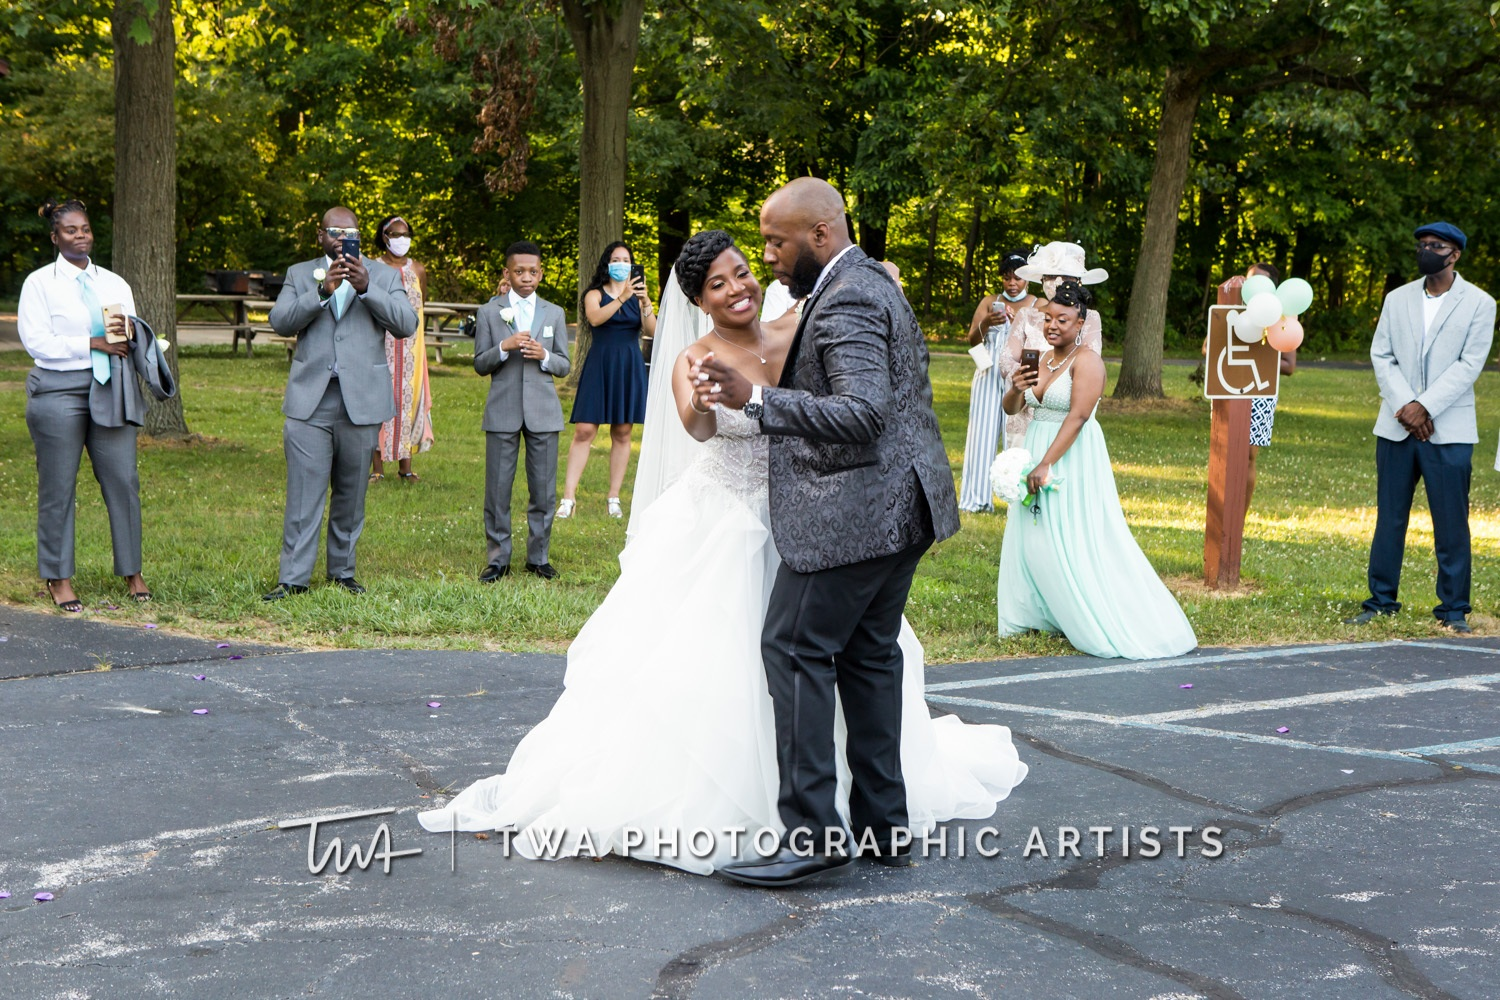 Chicago-Wedding-Photographer-TWA-Photographic-Artists-Private-Residence_Jones_Wright_HM-1017